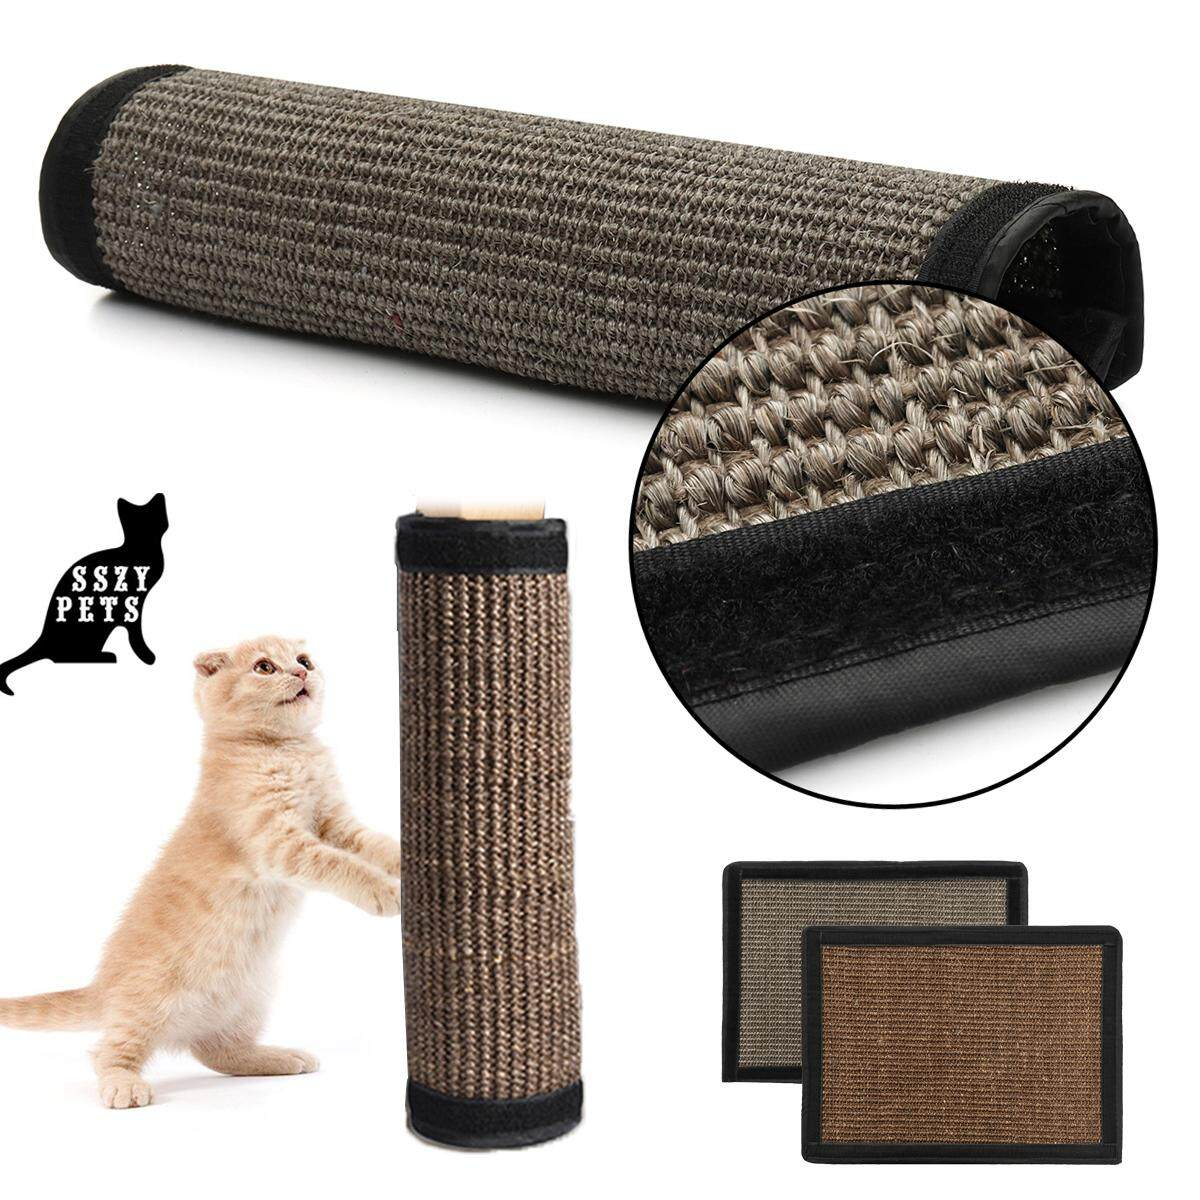 Discount Pet Cat Sisal Hemp Pad Scratching Post Toy Board Furniture Protected Mat 40 30Cm Dark Grey Intl Not Specified On China